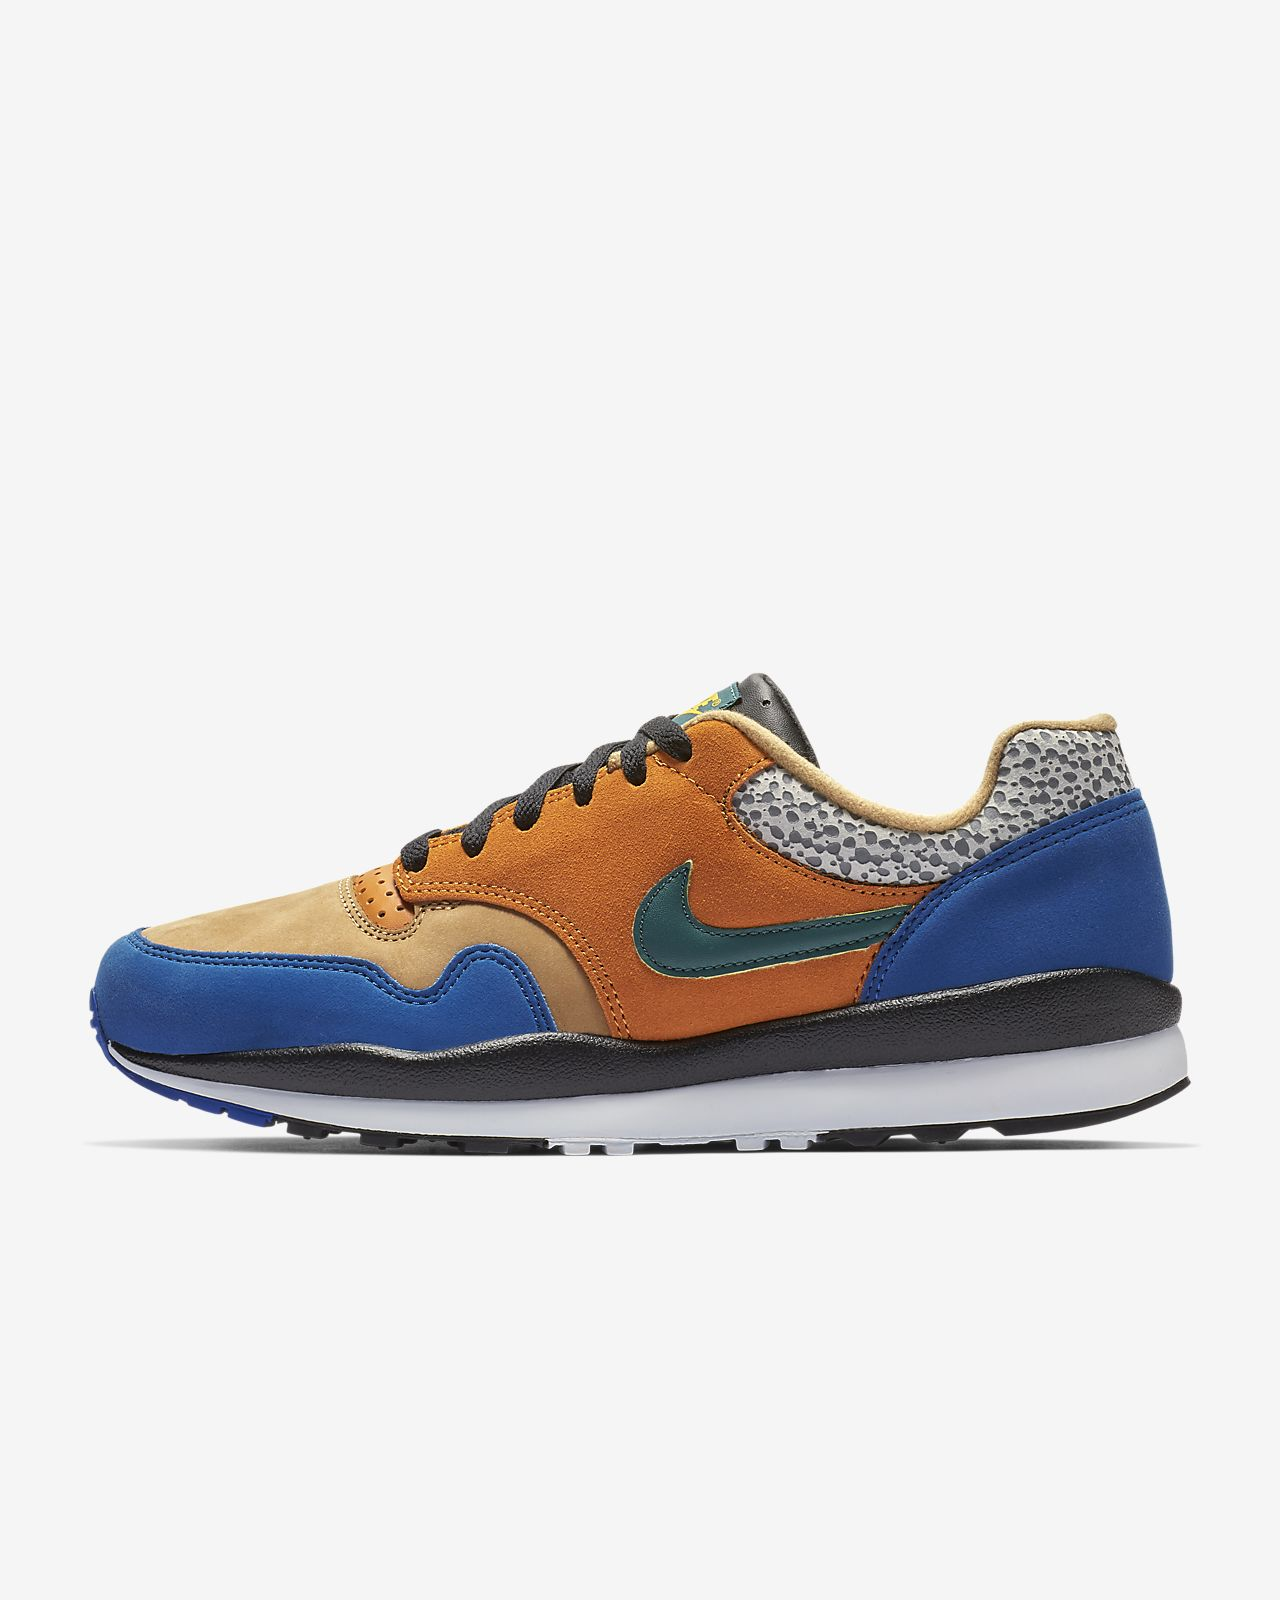 Nike Air Safari SE Men's Shoe